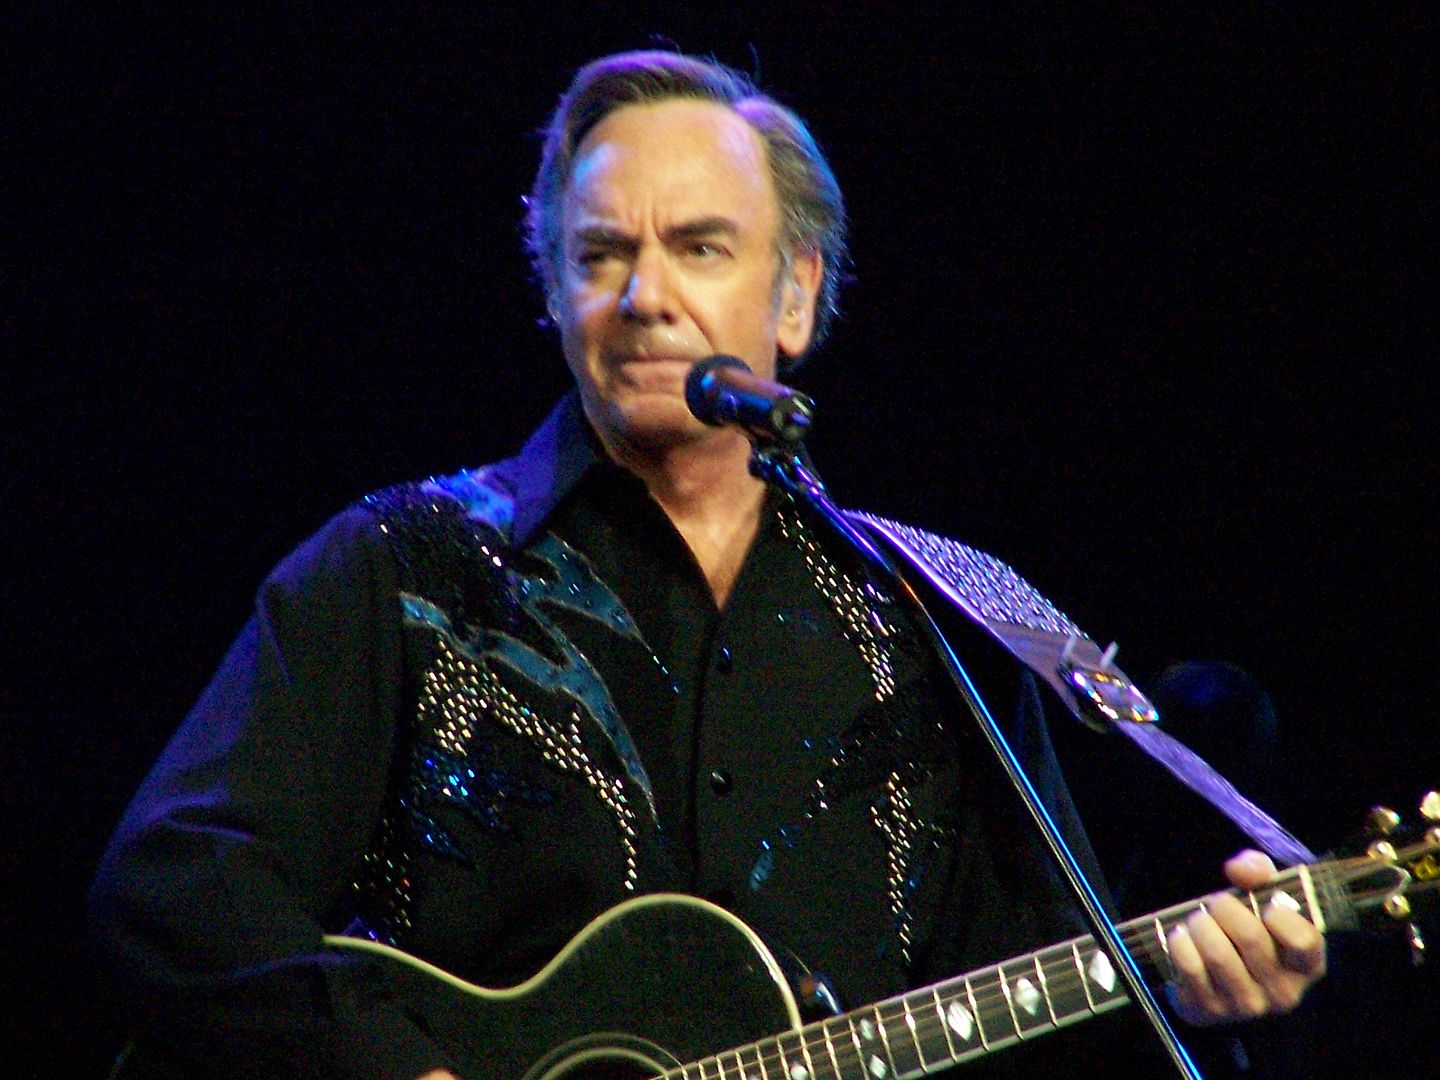 Neil Diamond By Irisgerh , CC BY 3.0,